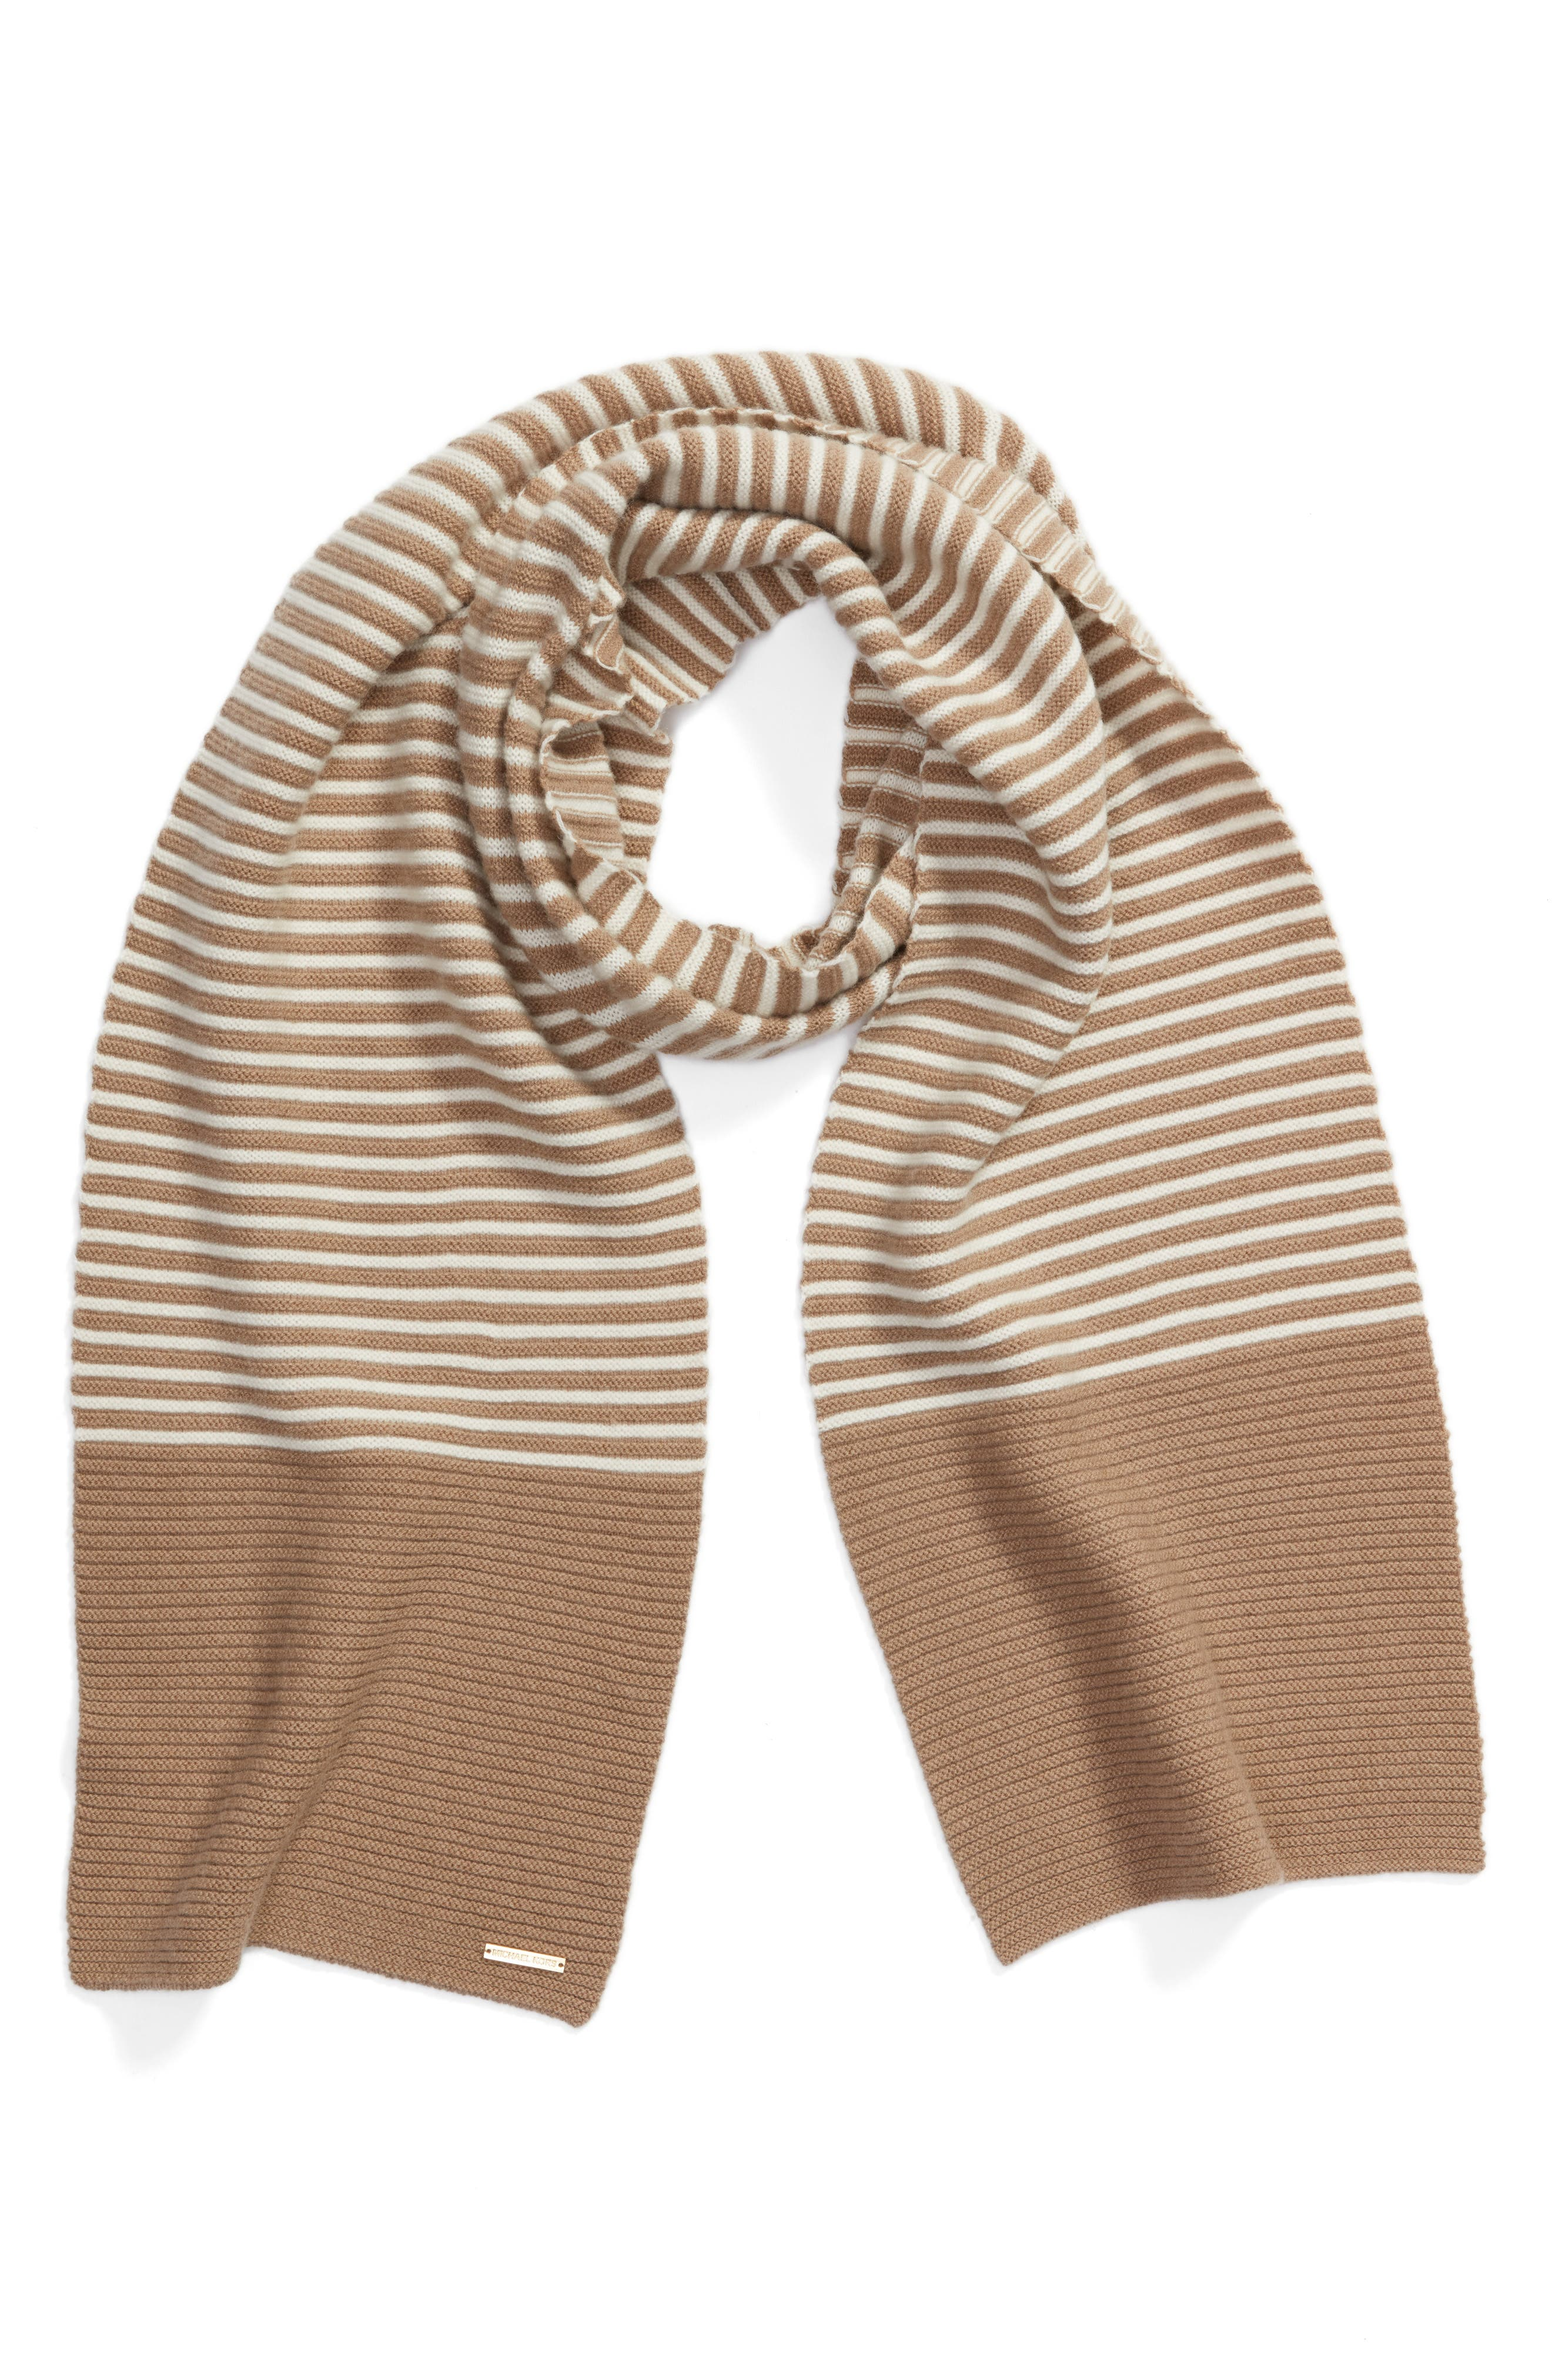 Double Links Wool & Cashmere Scarf,                             Alternate thumbnail 6, color,